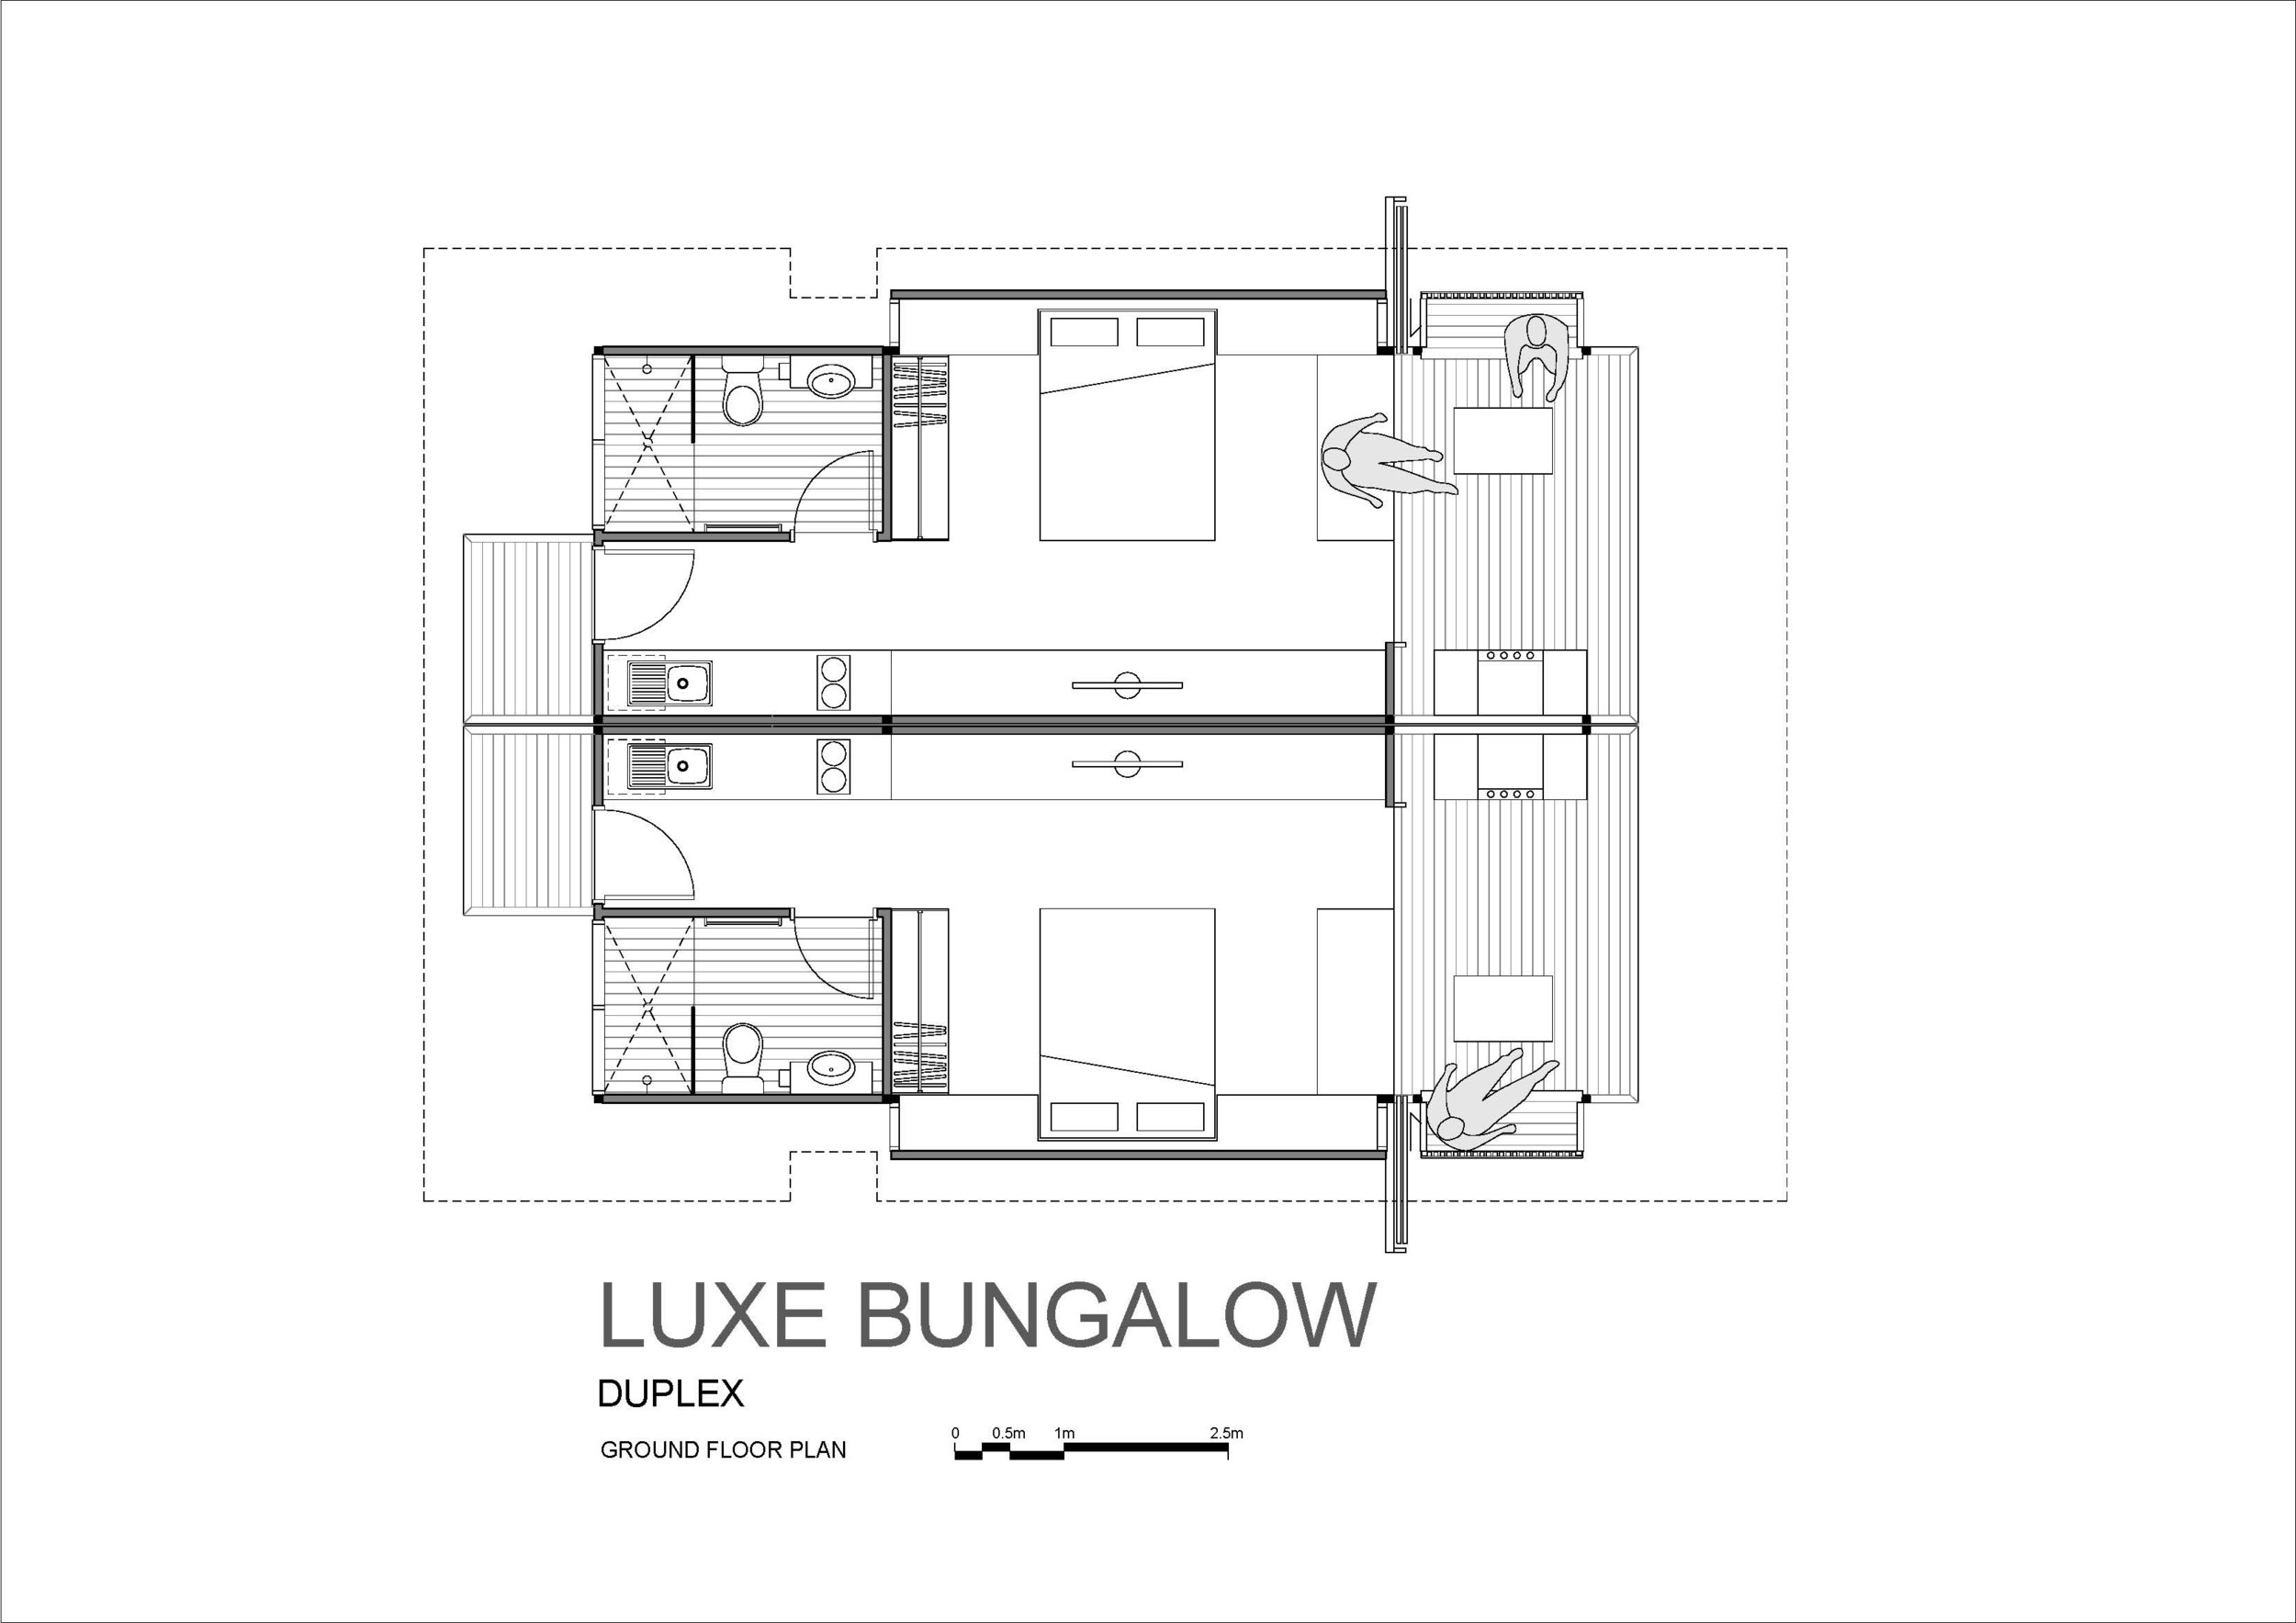 LUXE BUNGALOW_Page_1.jpg